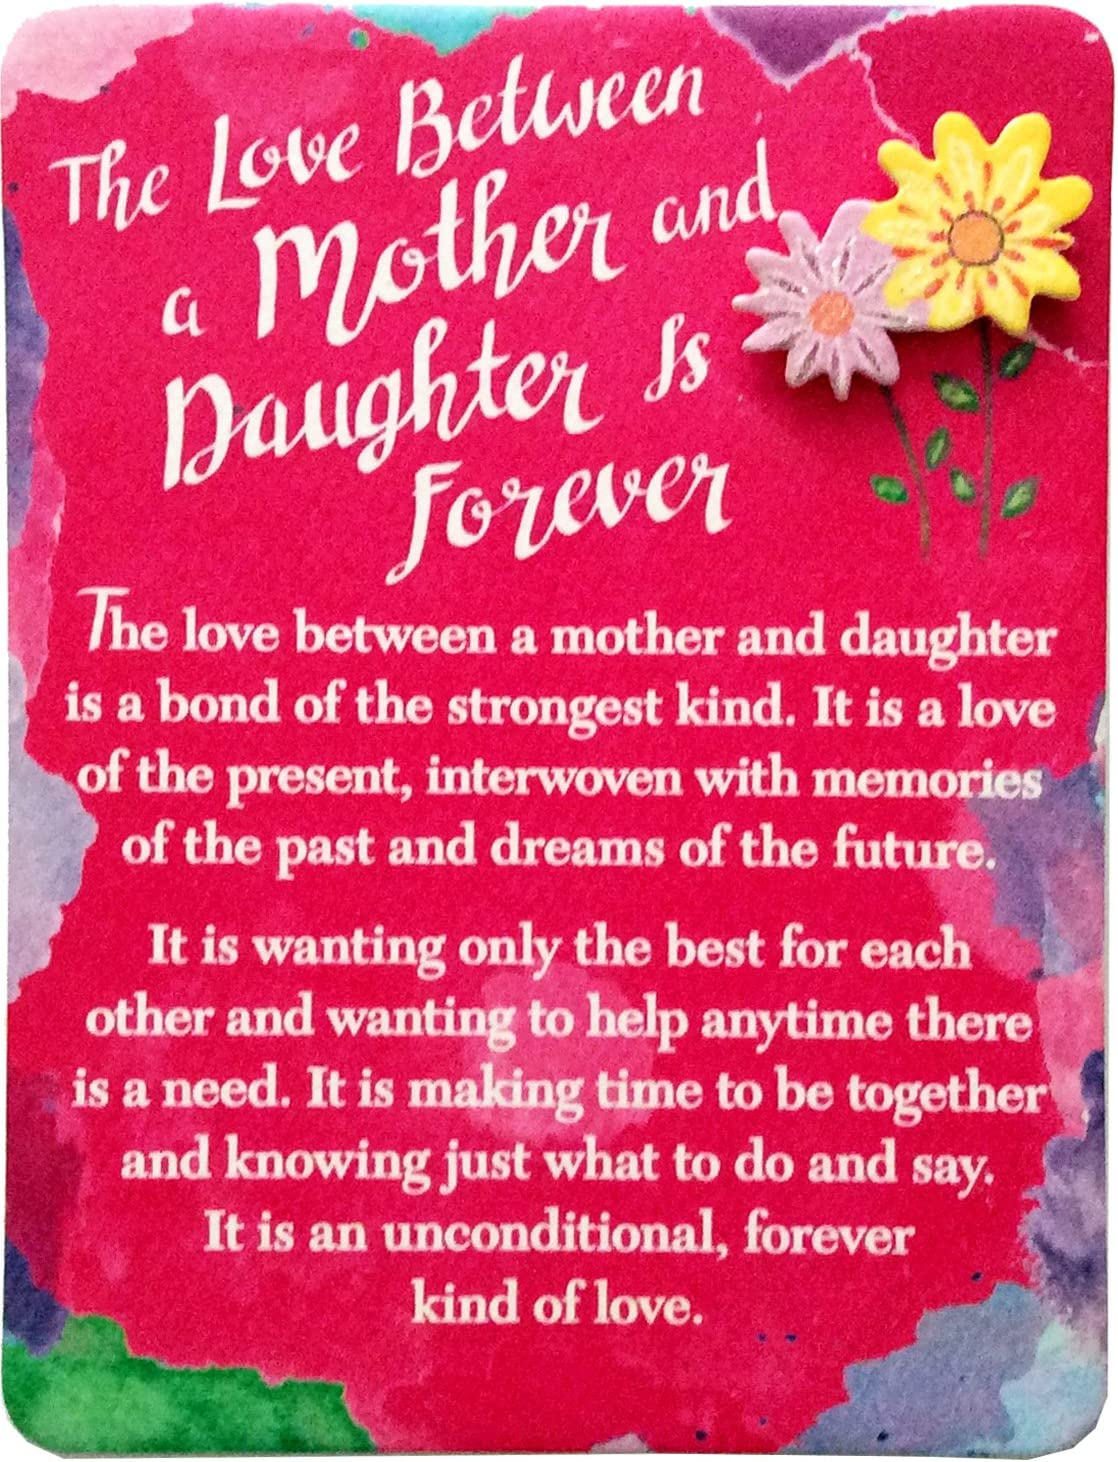 "Blue Mountain Arts Miniature Easel Print with Magnet ""The Love Between a Mother and Daughter Is Forever"" 4.9 x 3.6 in., Christmas, Birthday, Graduation, Mother's Day, or ""I Love You"" Gift"